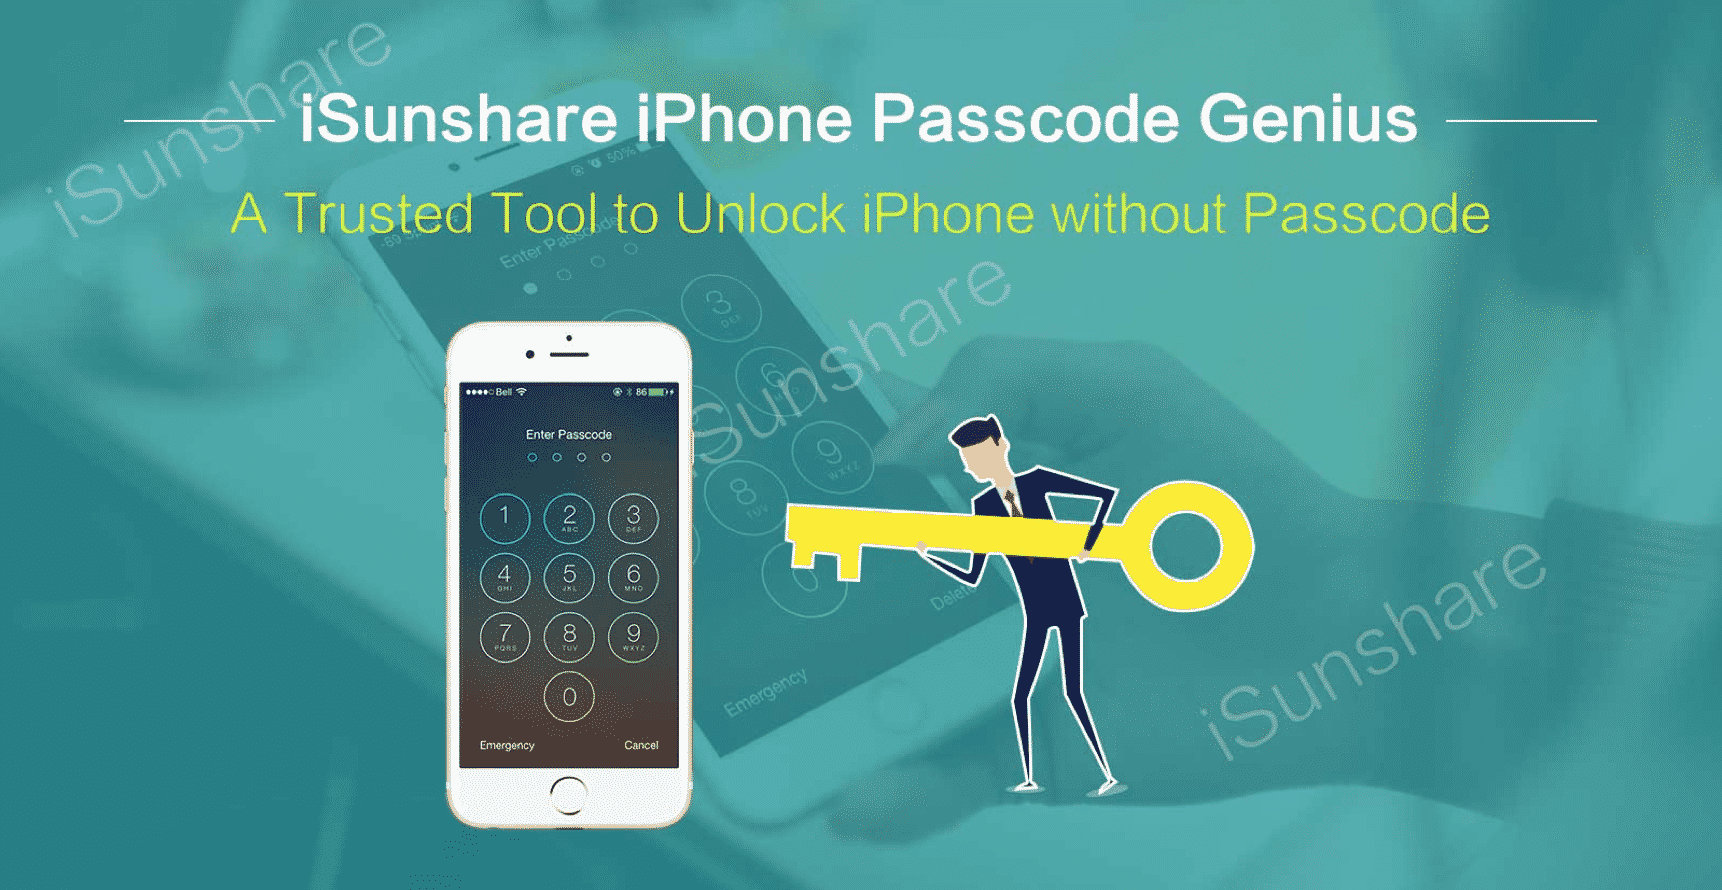 iSunshare iPhone Passcode Genius for Windows --Unlock iPhone without Passcode